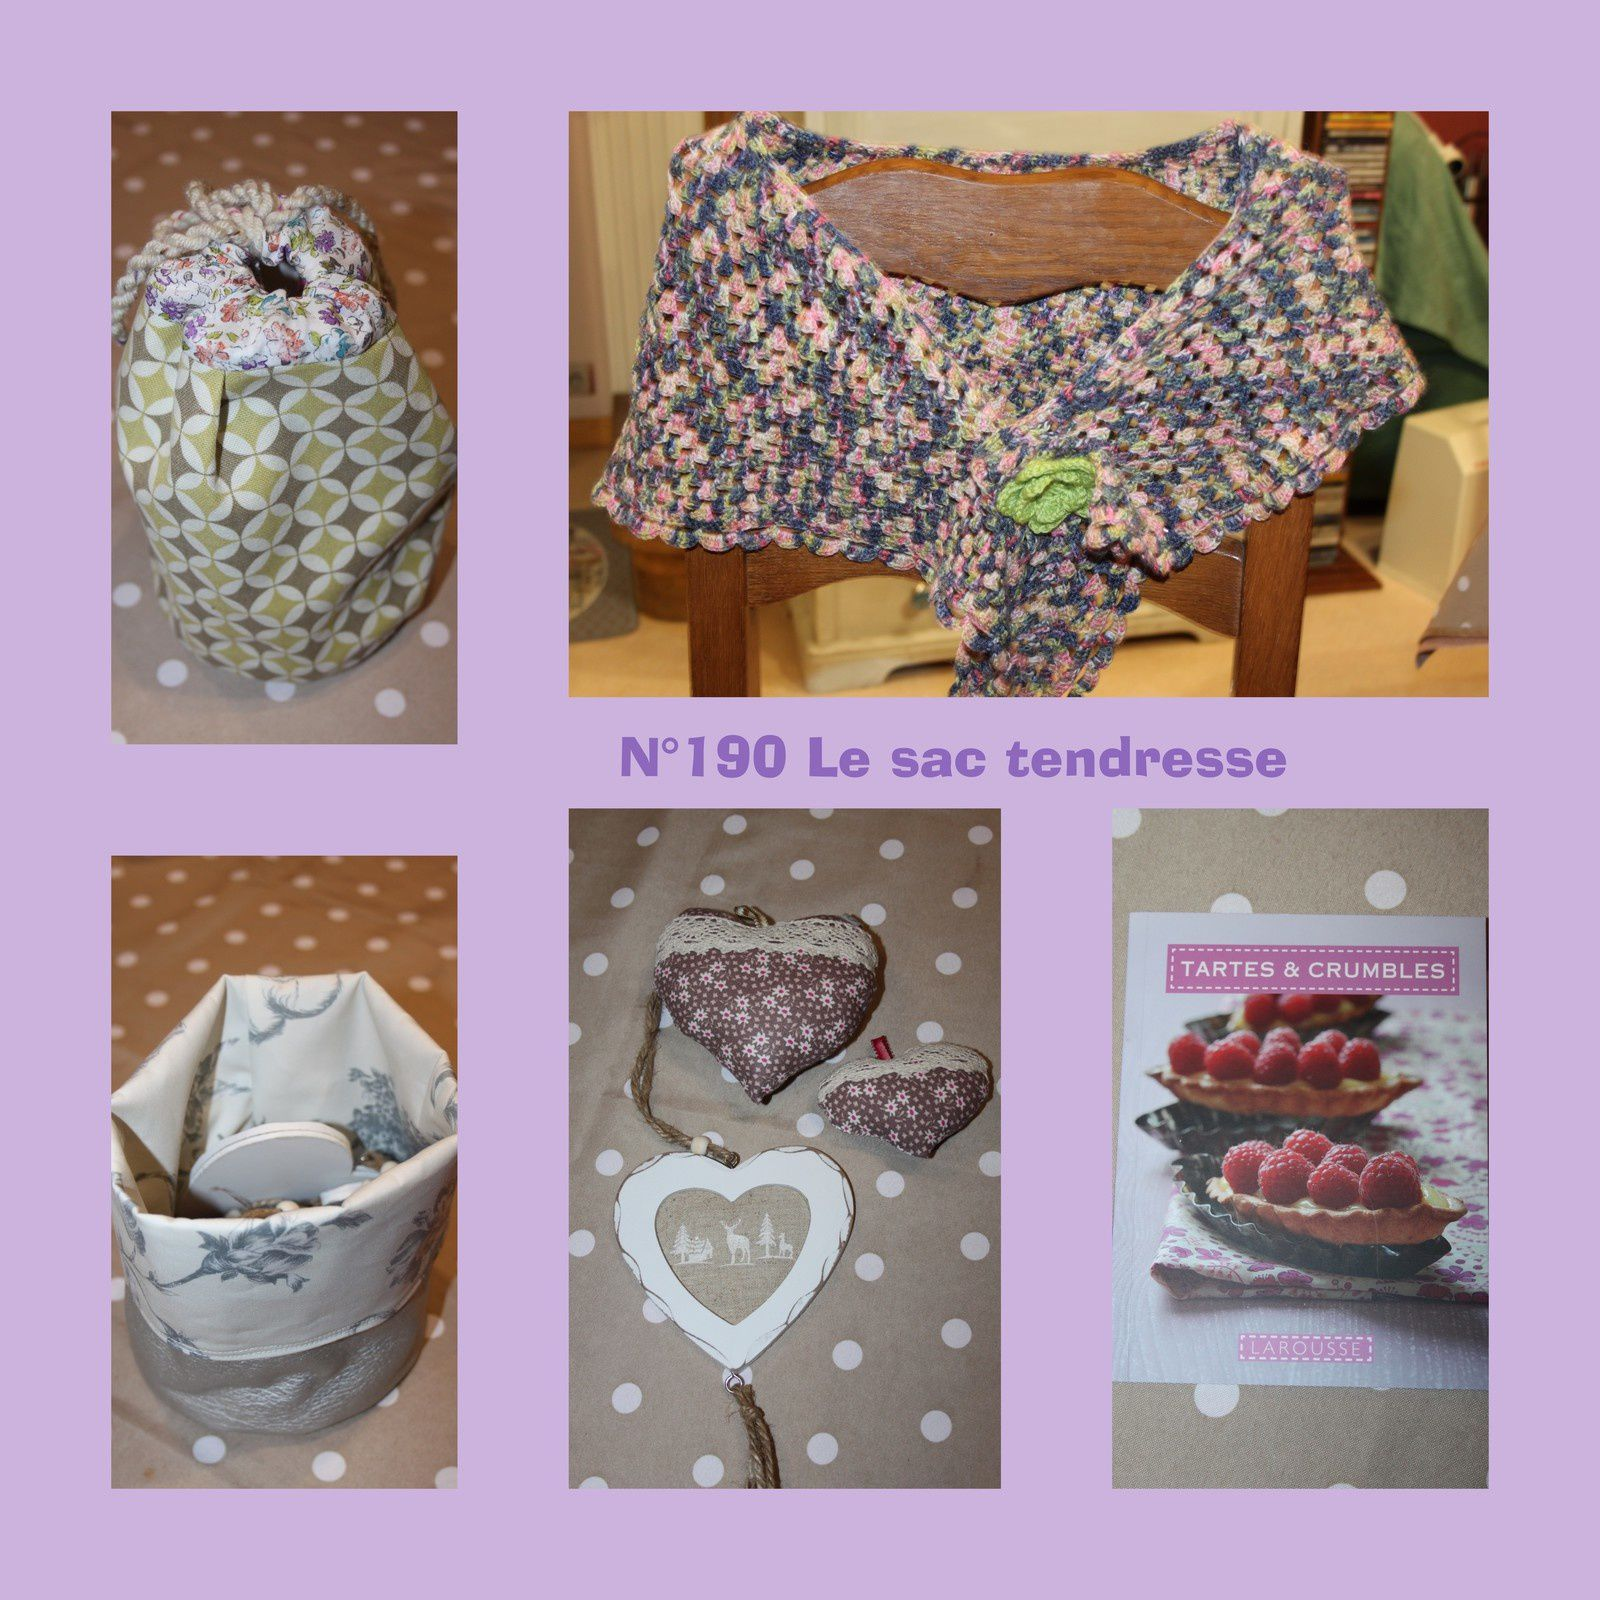 N°190 Le sac Tendresse pour 4ine